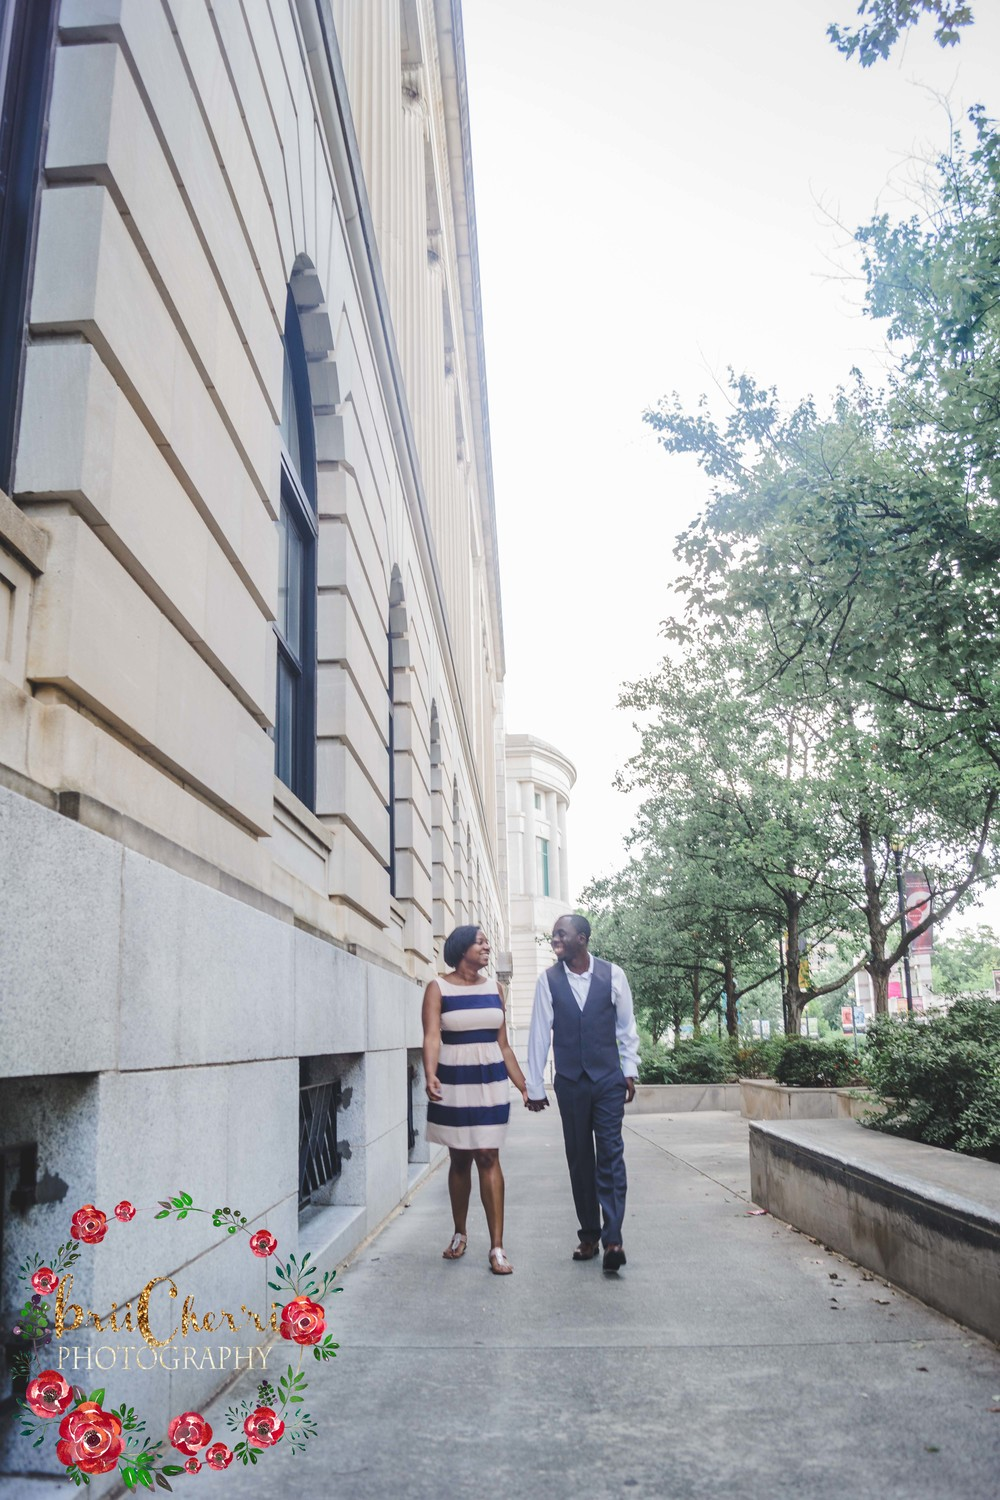 Downtown City Raleigh Engagement Session Photography